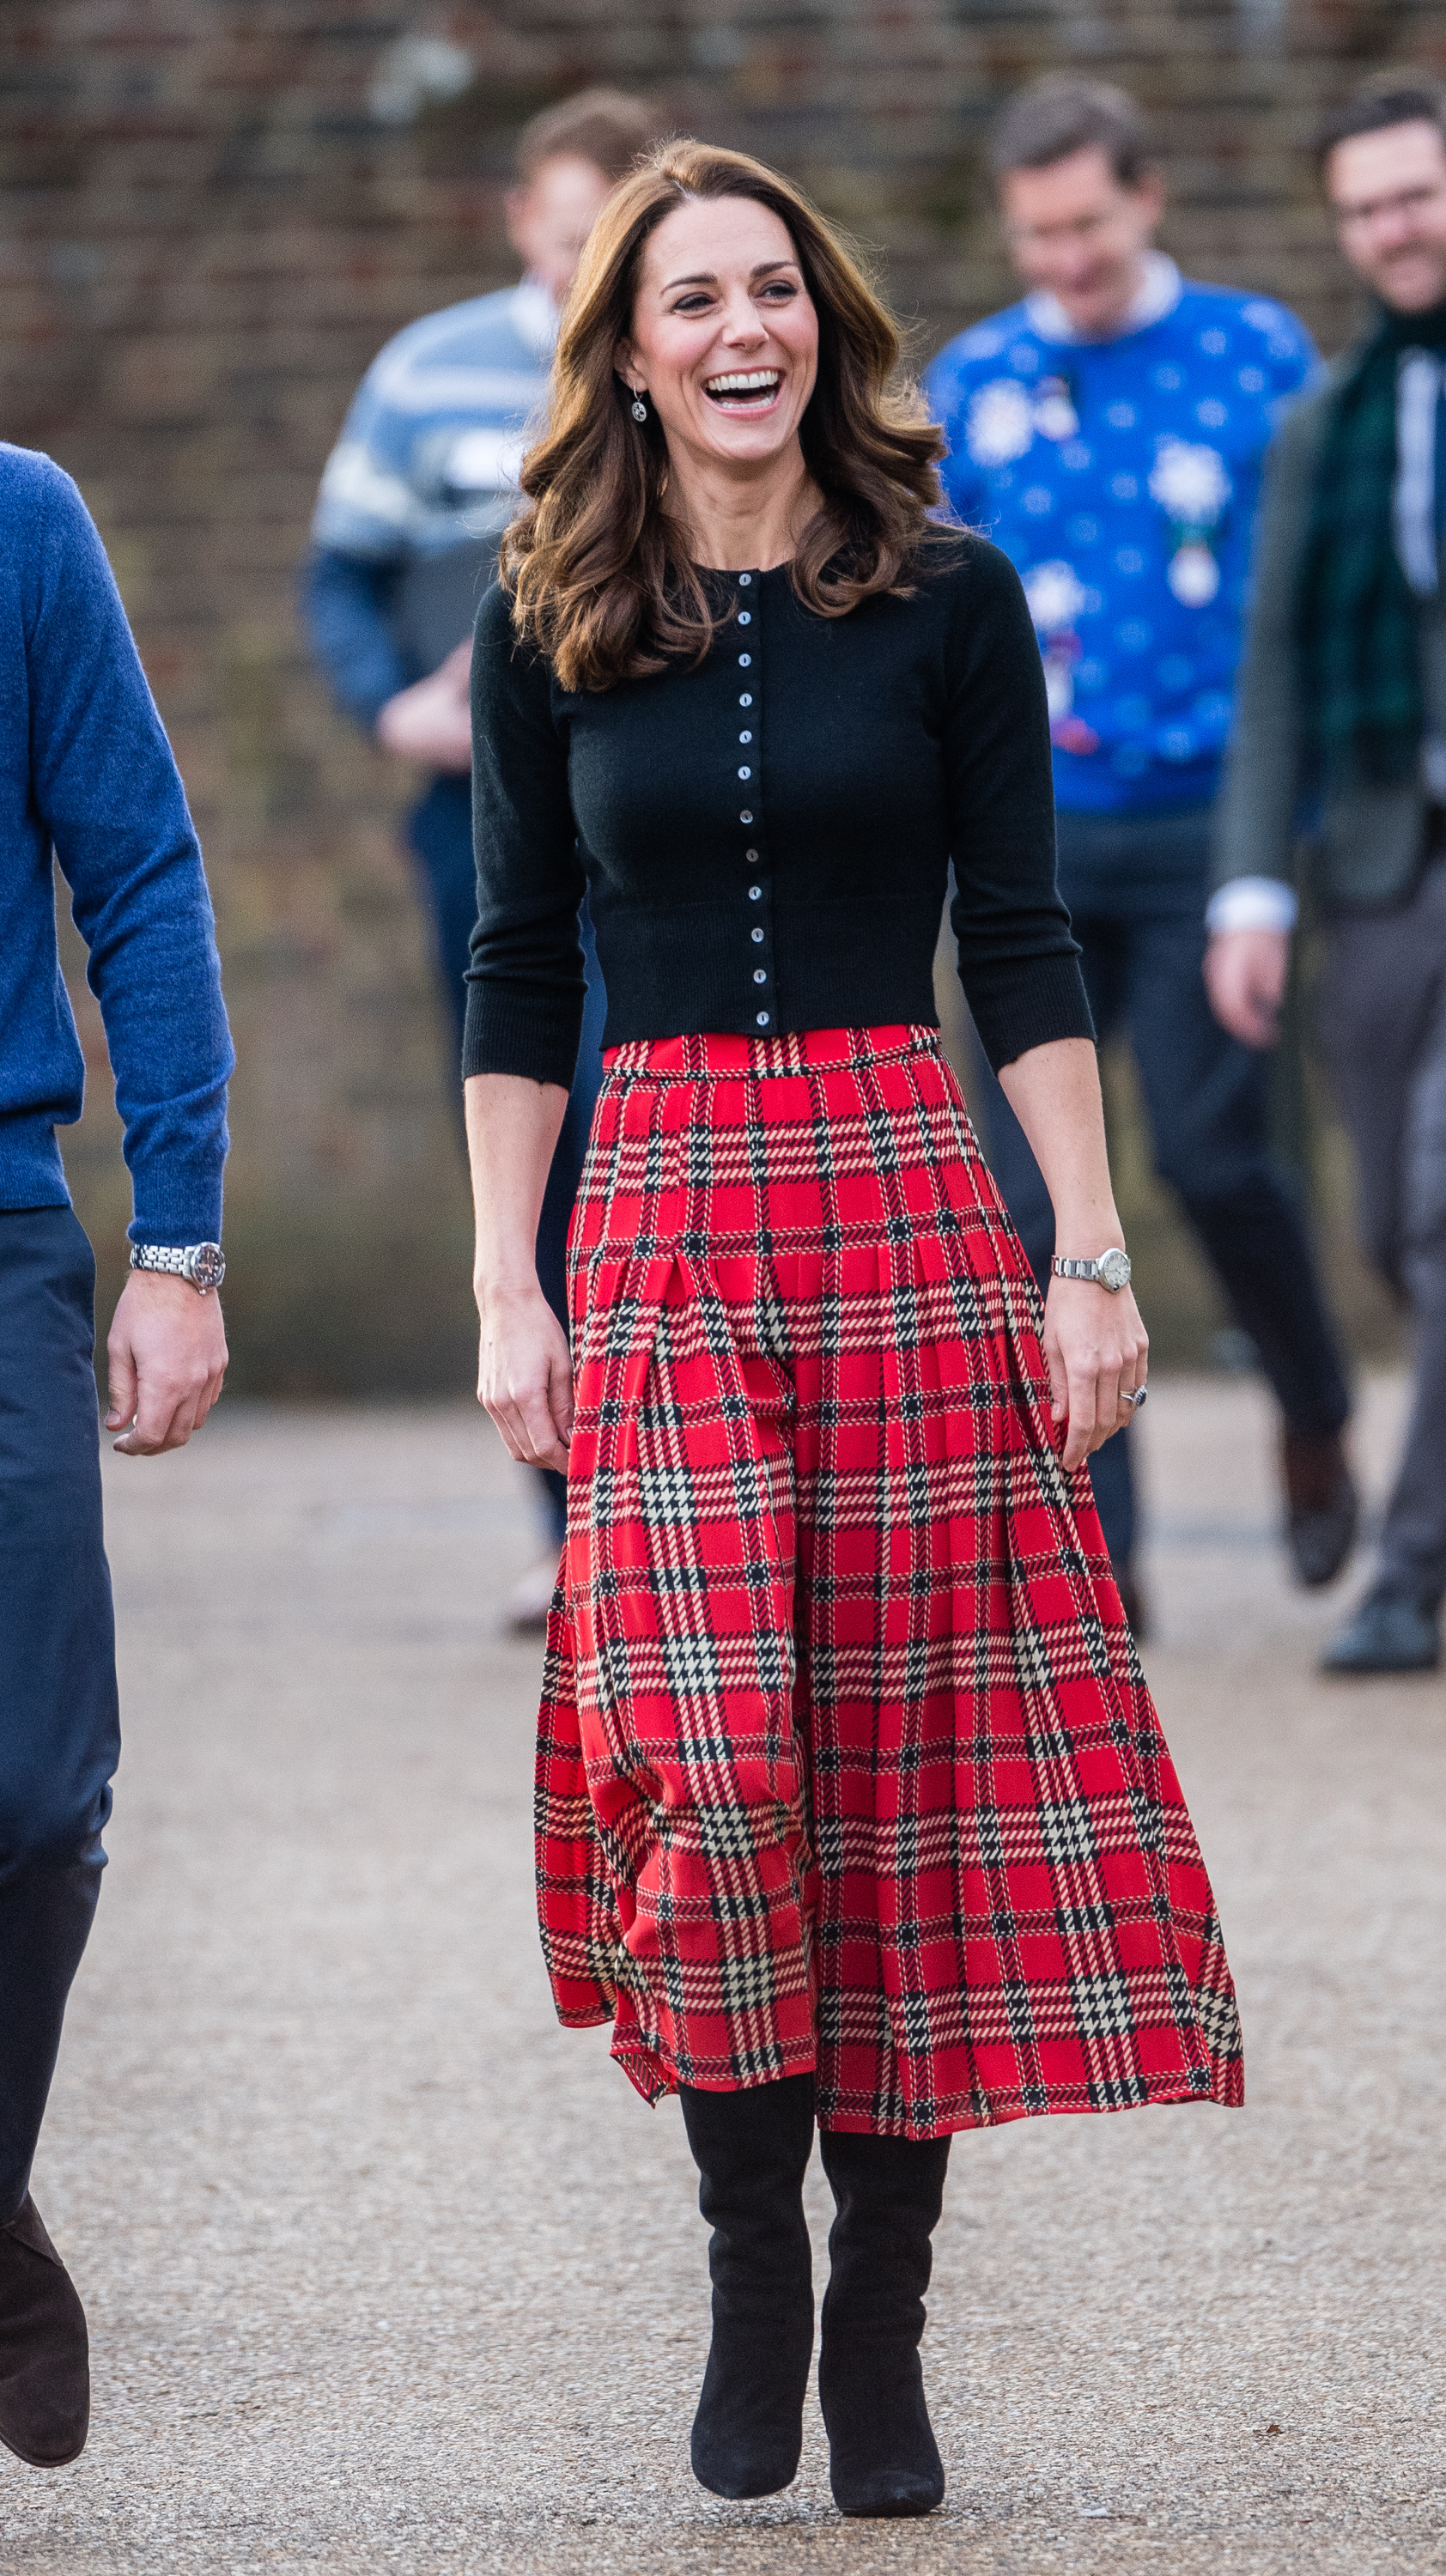 LONDON, ENGLAND - DECEMBER 04: Catherine, Duchess of Cambridge attends a party for families of military personnel deployed in Cyprus at Kensington Palace on December 04, 2018 in London, England. (Photo by Samir Hussein/Samir Hussein/WireImage)